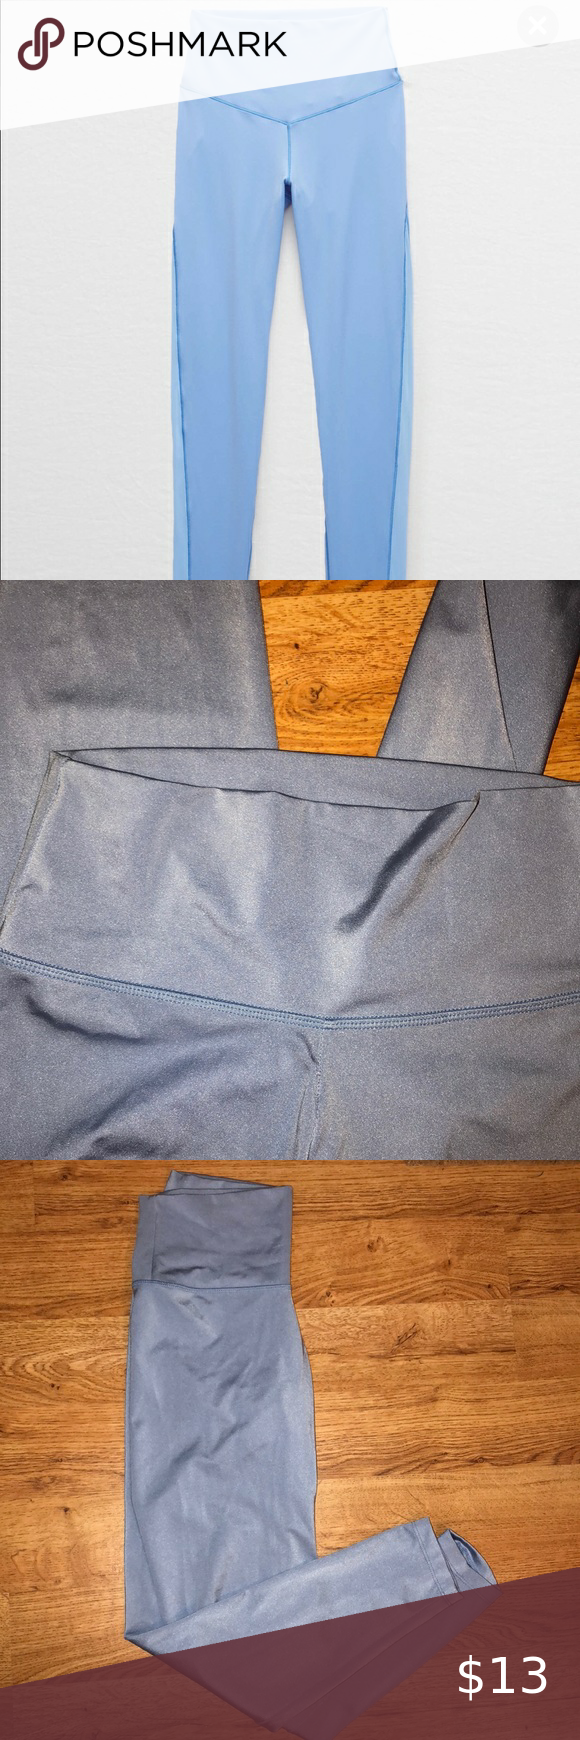 aerie leggings aerie leggings WORN ONCE super cute mesh-looking sea blue :) Pants Leggings #myposhpicks